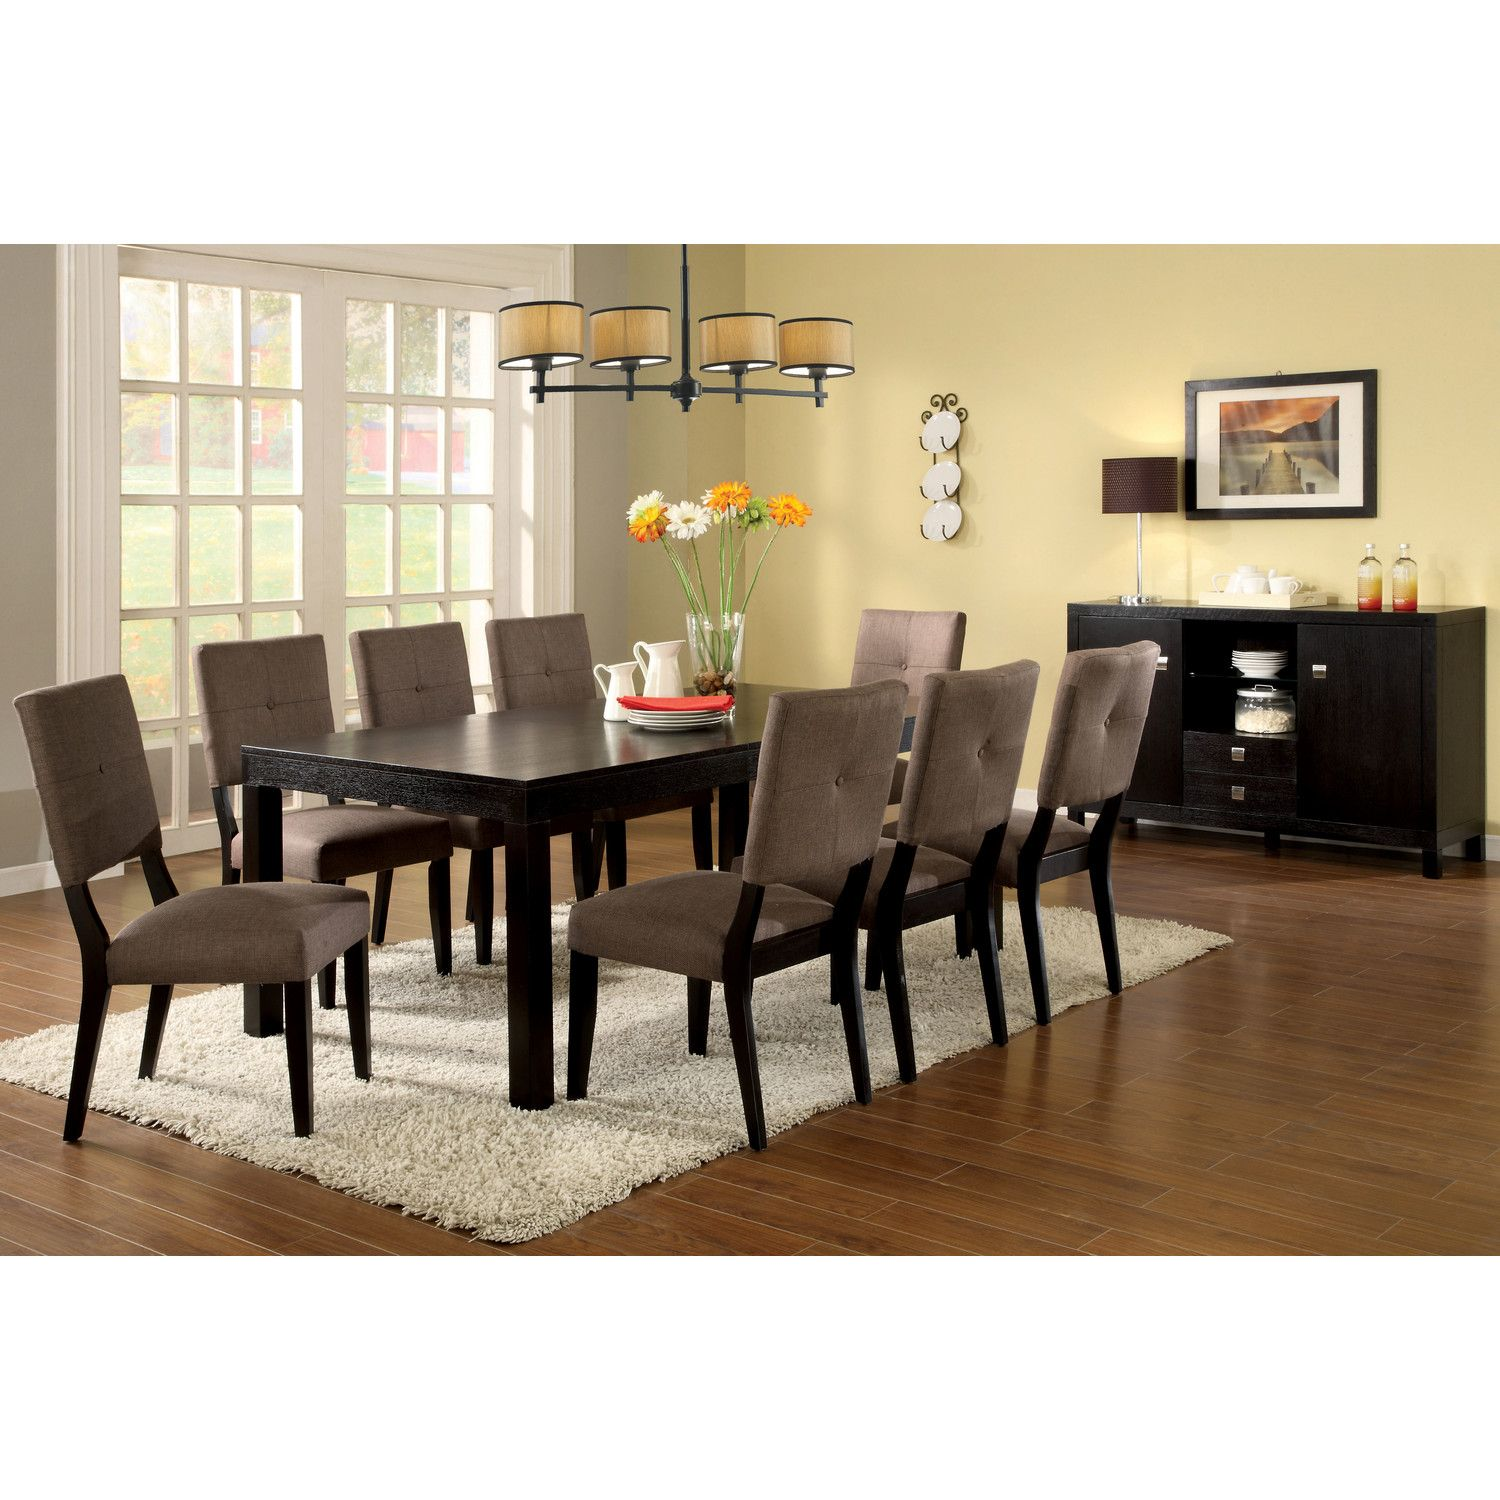 Hokku Designs Grant 7 Piece Dining Set & Reviews | Wayfair